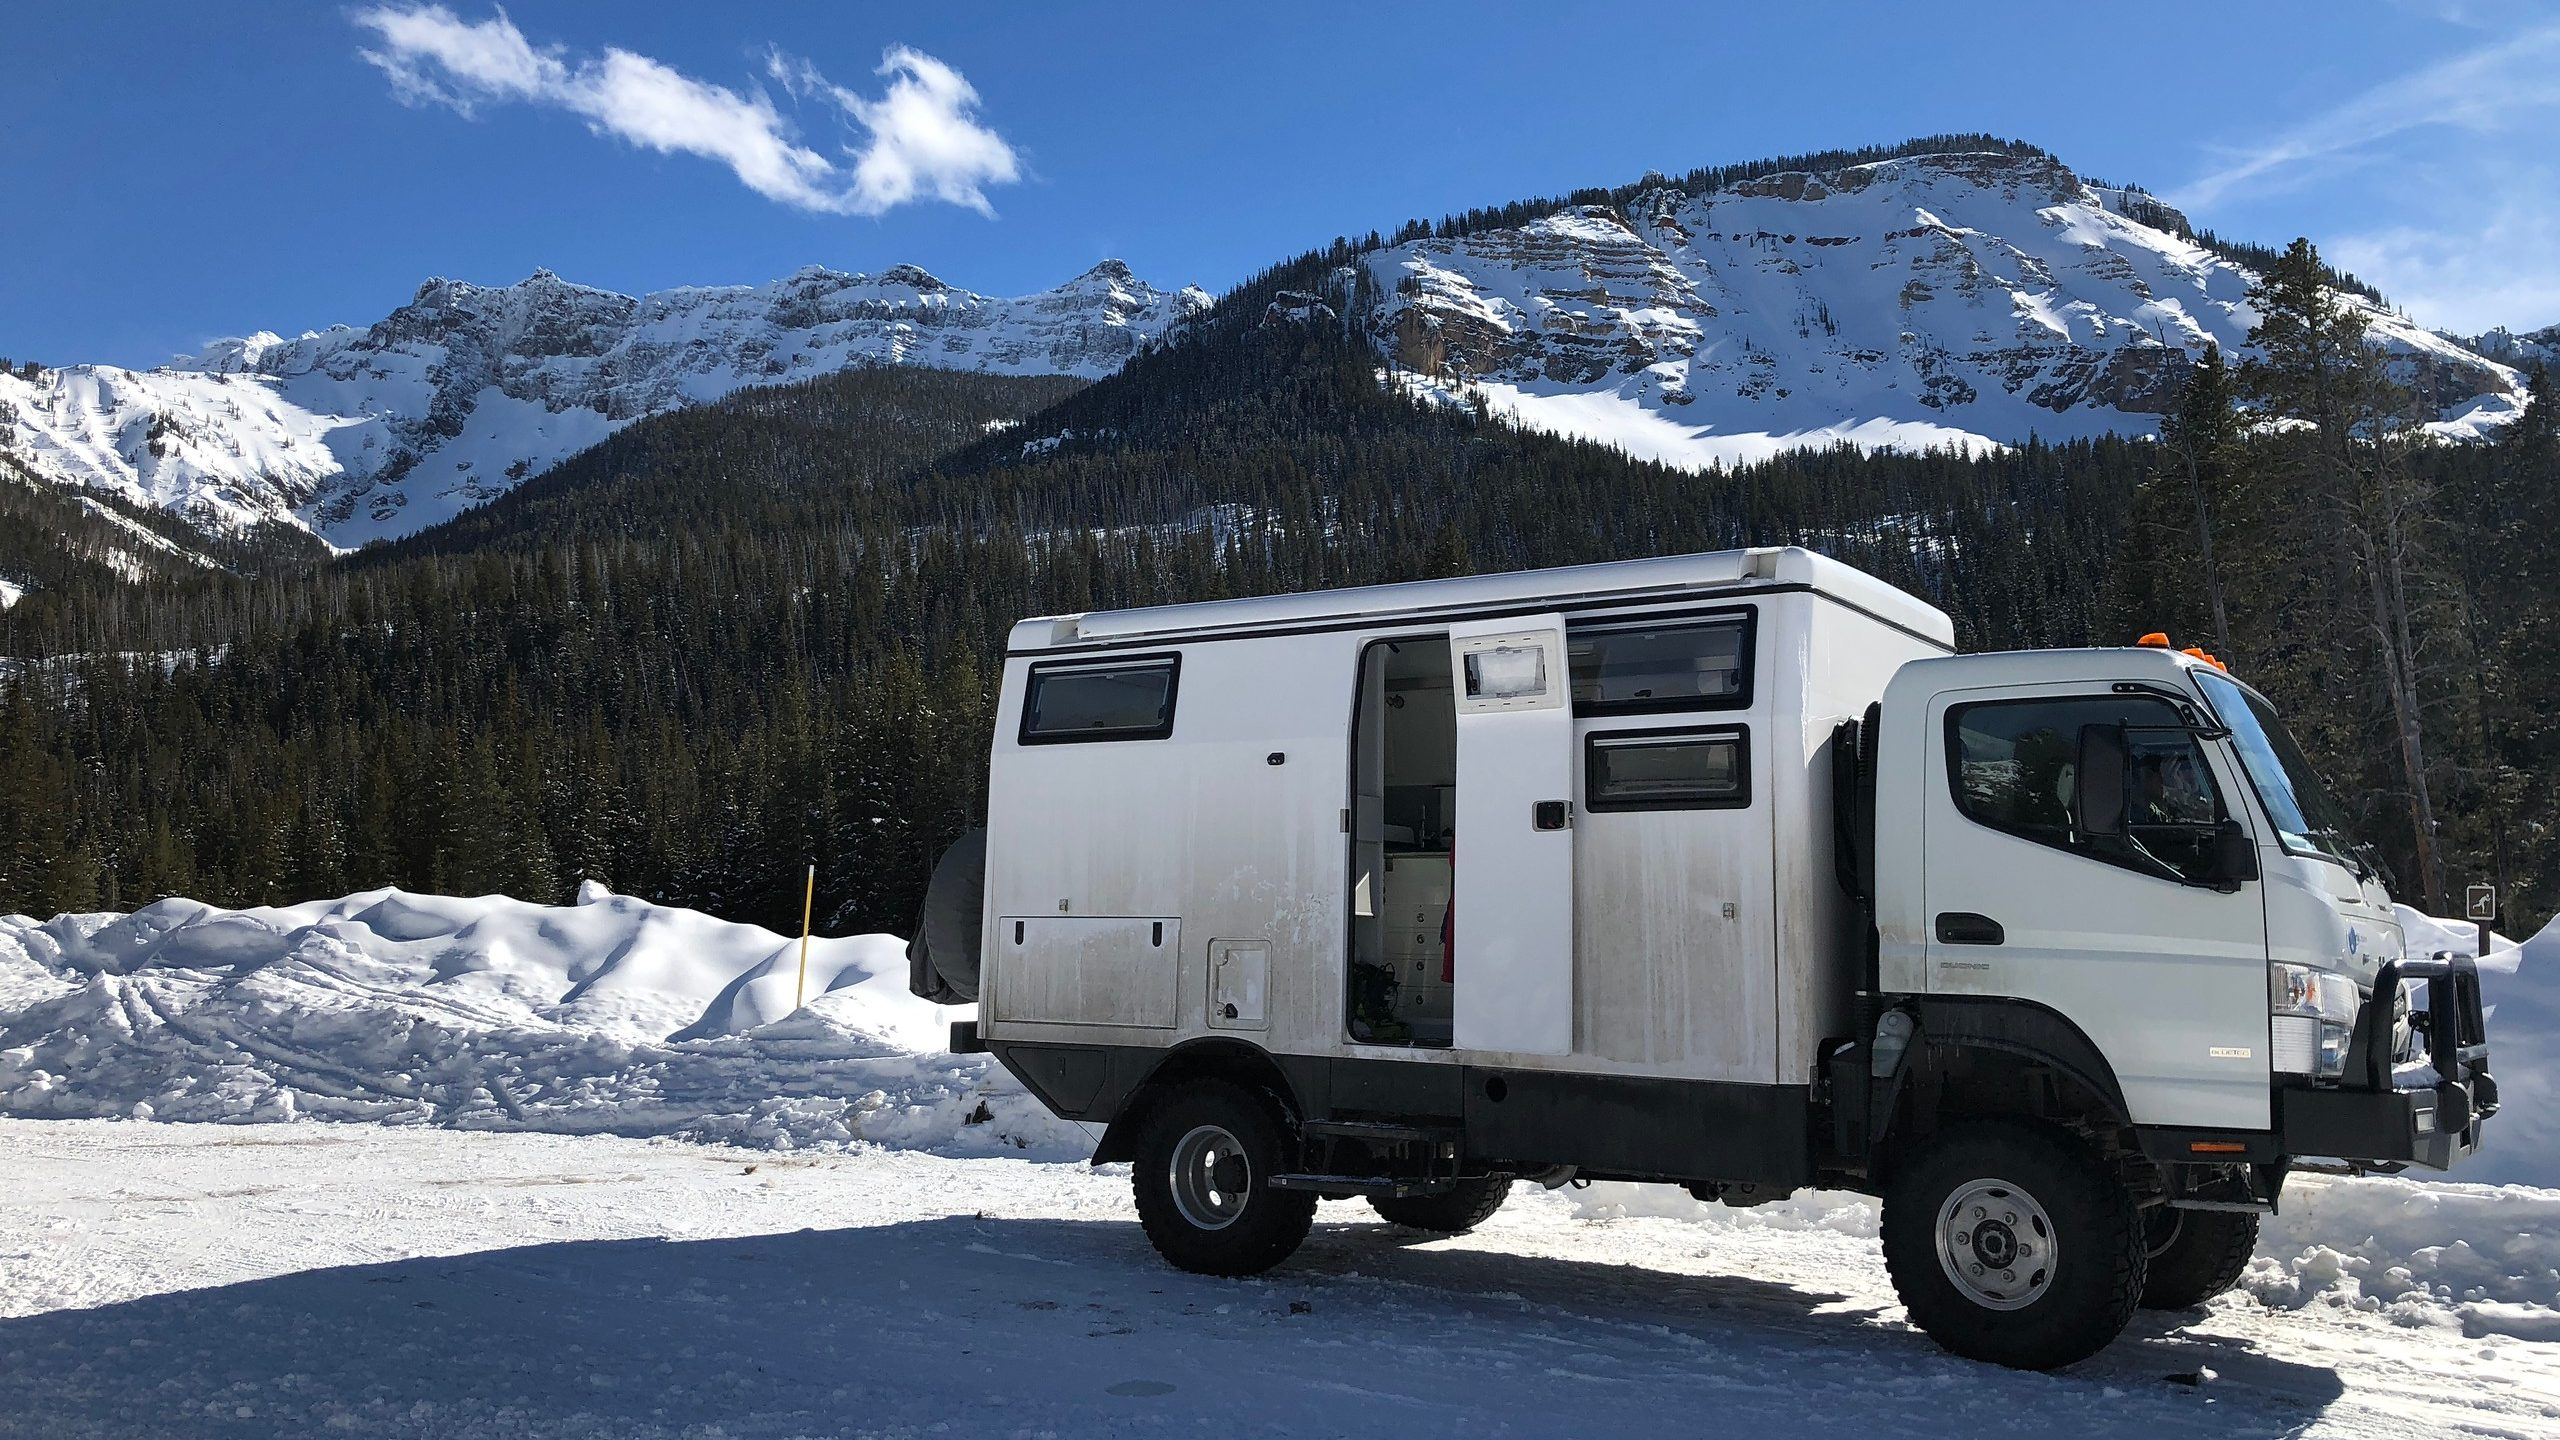 Expedition Portal Classifieds: 2017 Earth Cruiser with 9,000 Miles